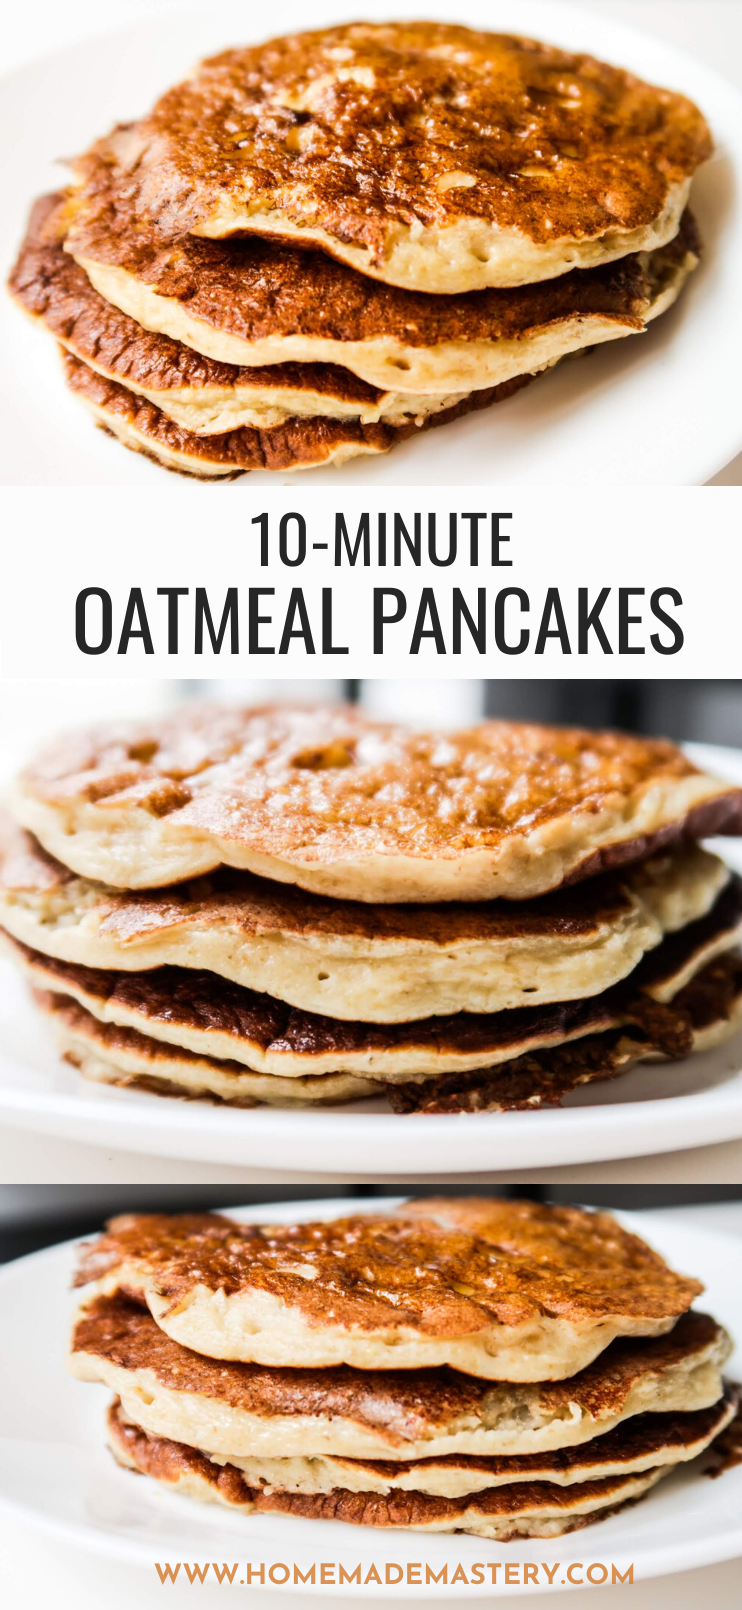 Healthy and easy oatmeal pancake recipe without banana! These easy healthy pancakes are made with no flour and no sugar and are great for a delicious quick and easy breakfast! Fluffy and very versatile - top with your favourite toppings!